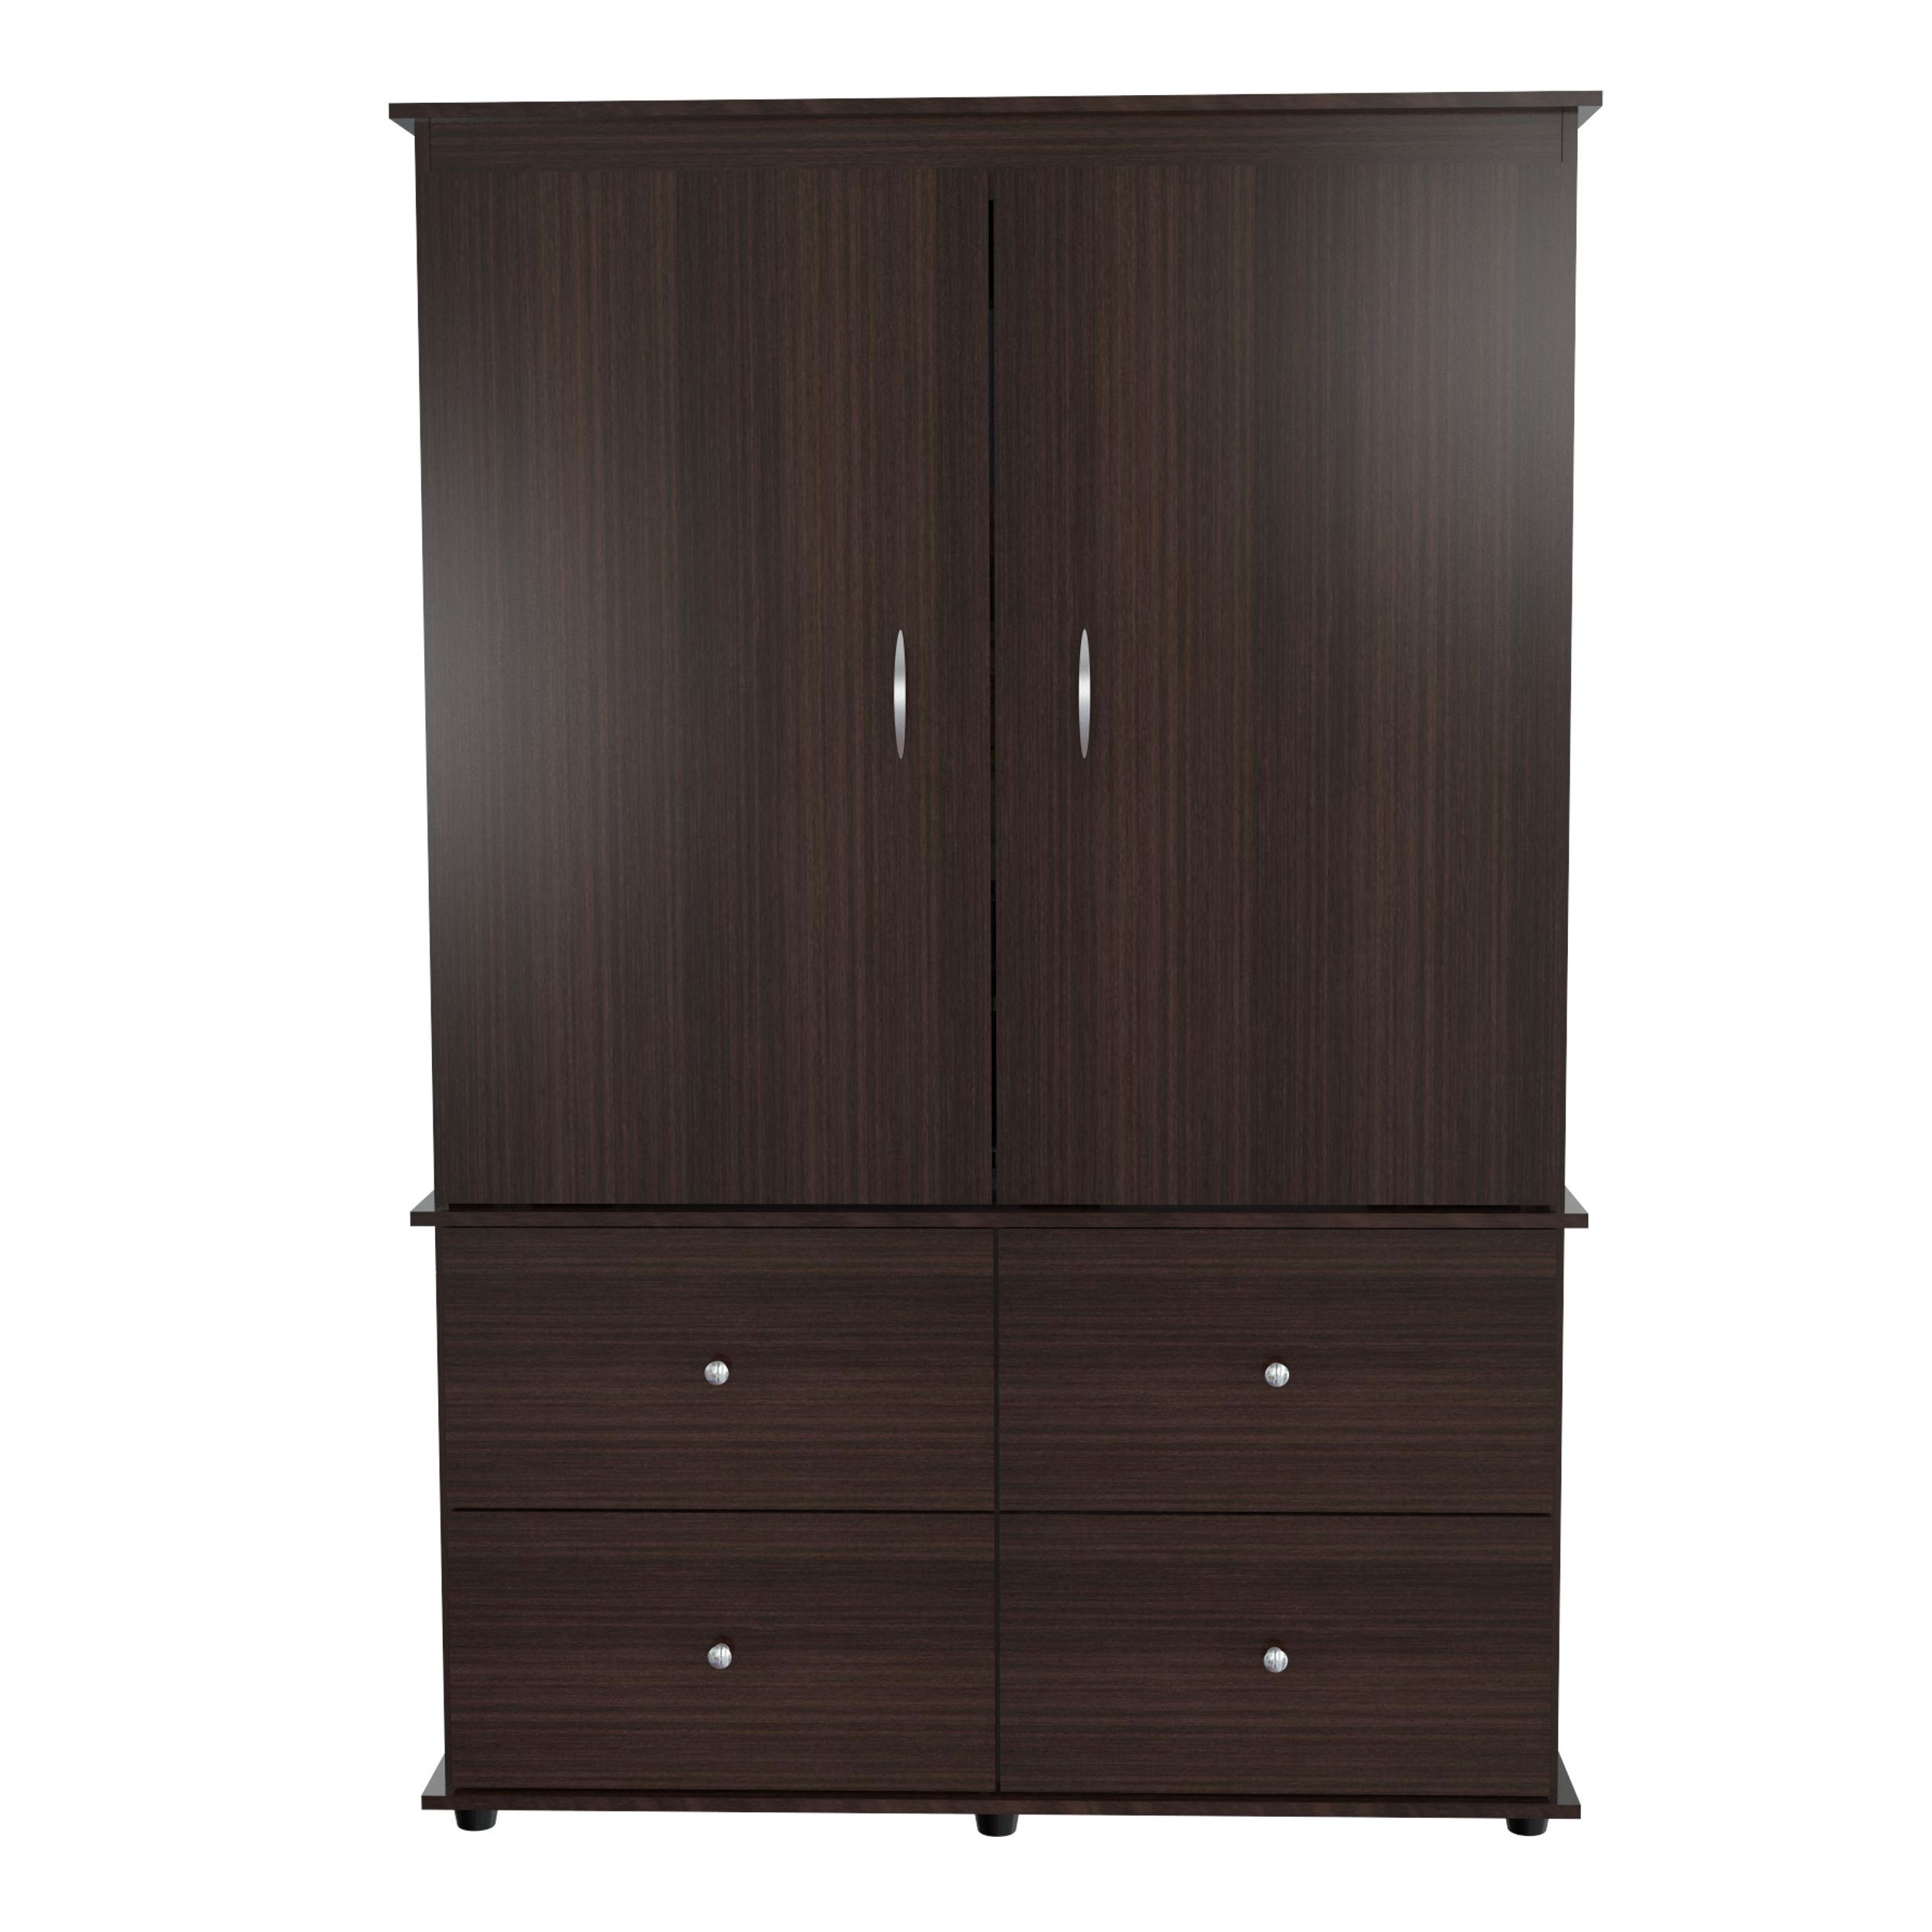 appealing armoire closet home depot roselawnlutheran. Black Bedroom Furniture Sets. Home Design Ideas